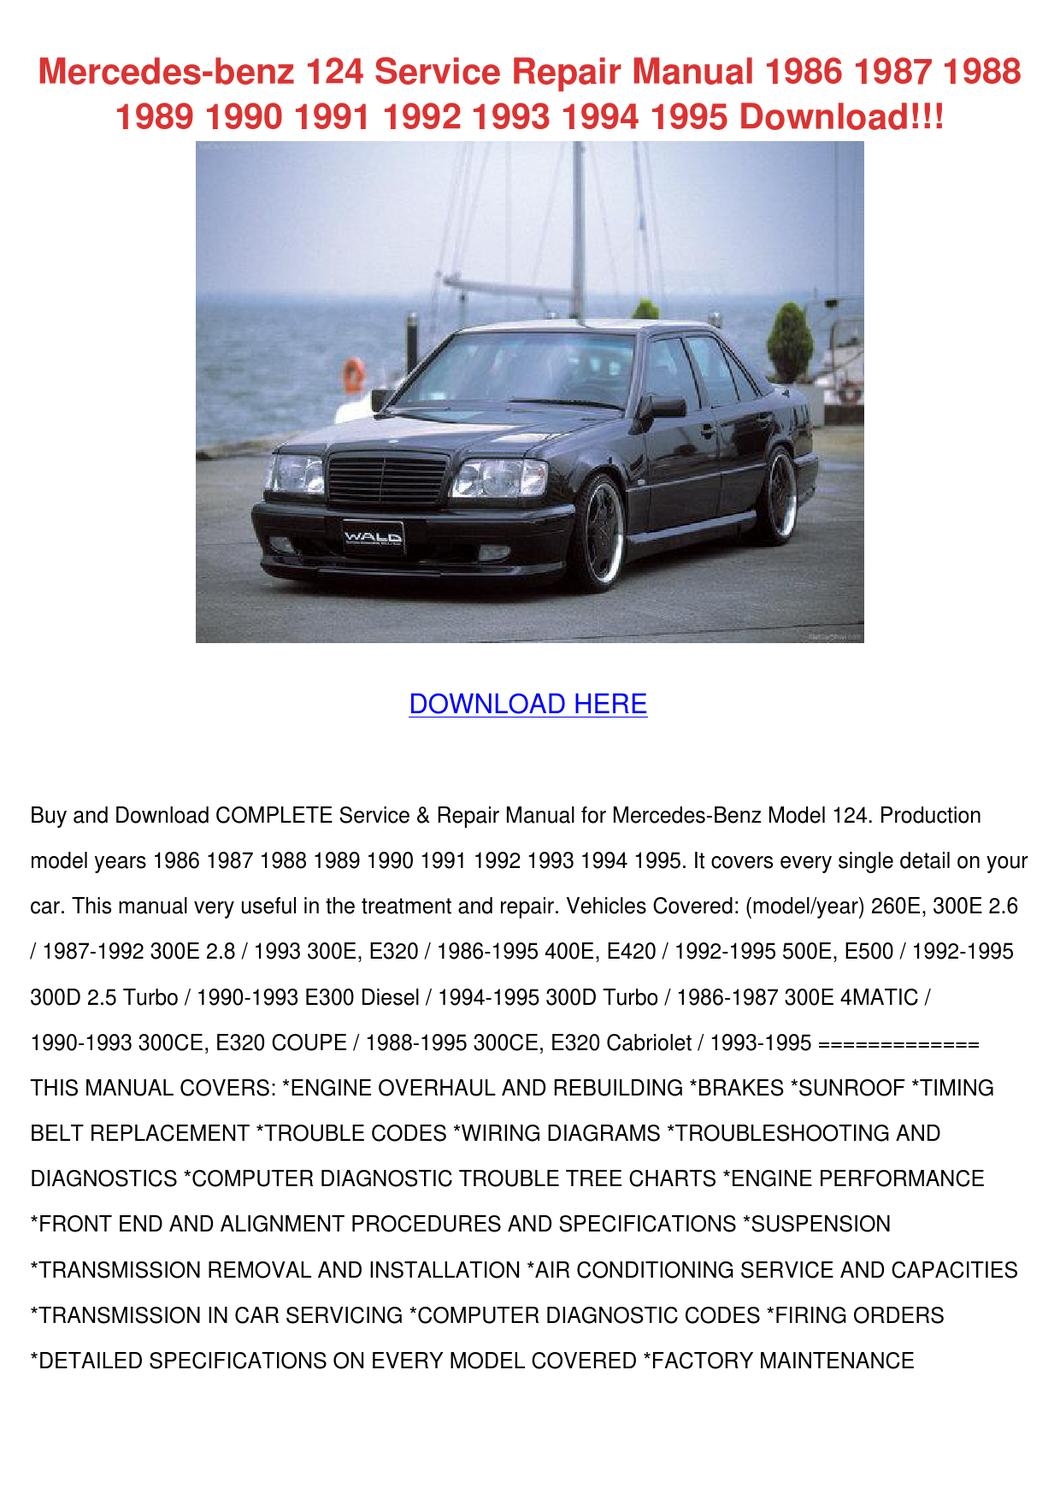 Car Timing Belt >> Mercedes Benz 124 Service Repair Manual 1986 by CorneliusBurt - Issuu